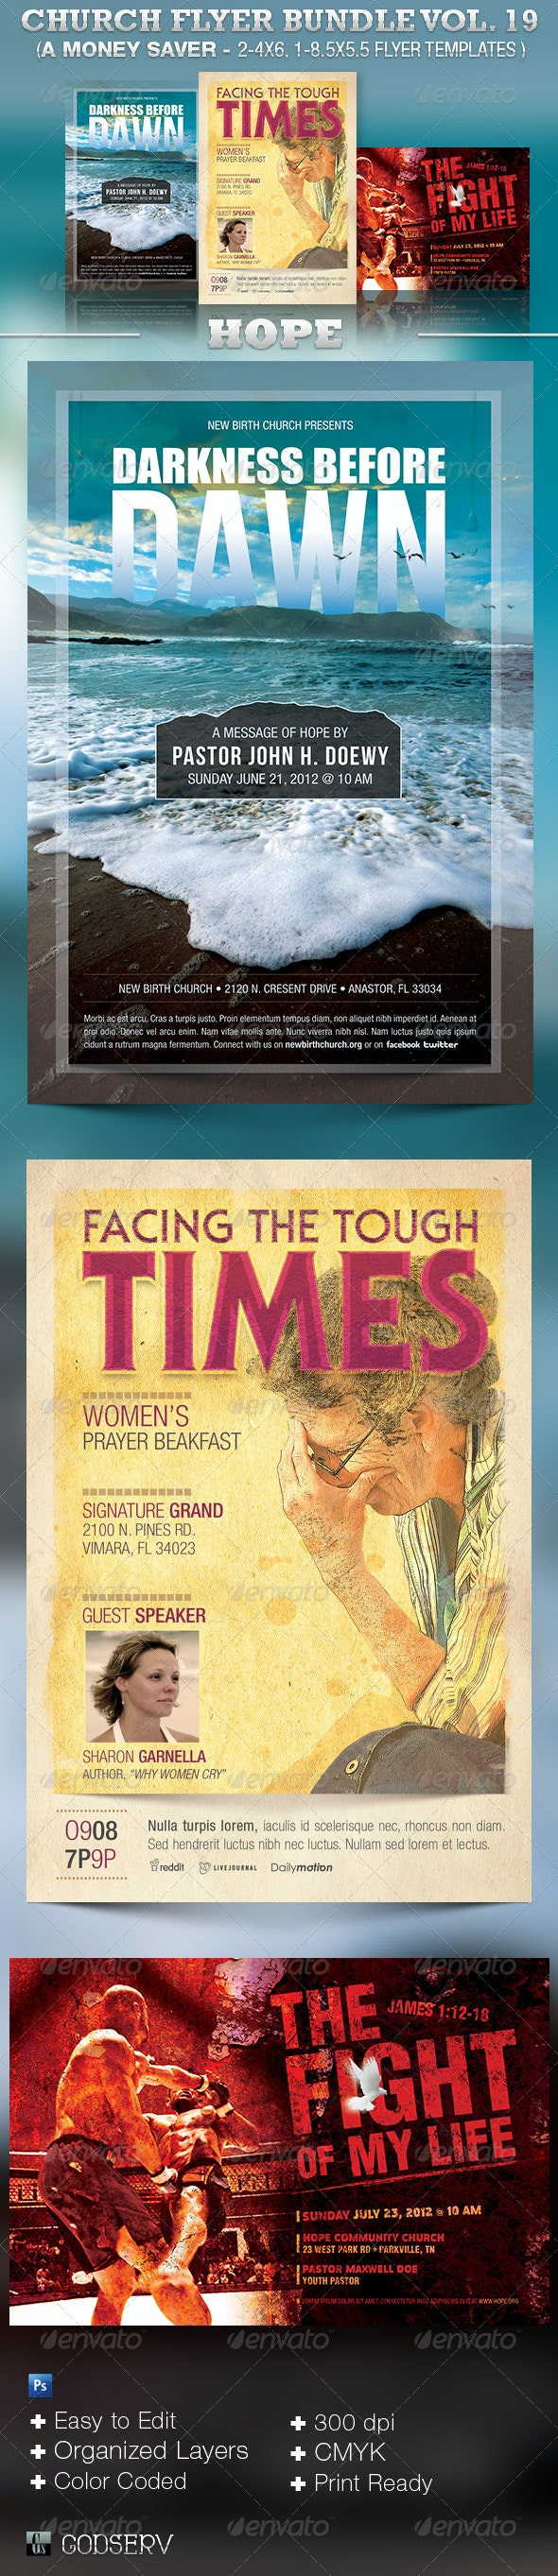 Hope Church Flyer Template Bundle Vol 19 - Church Flyers